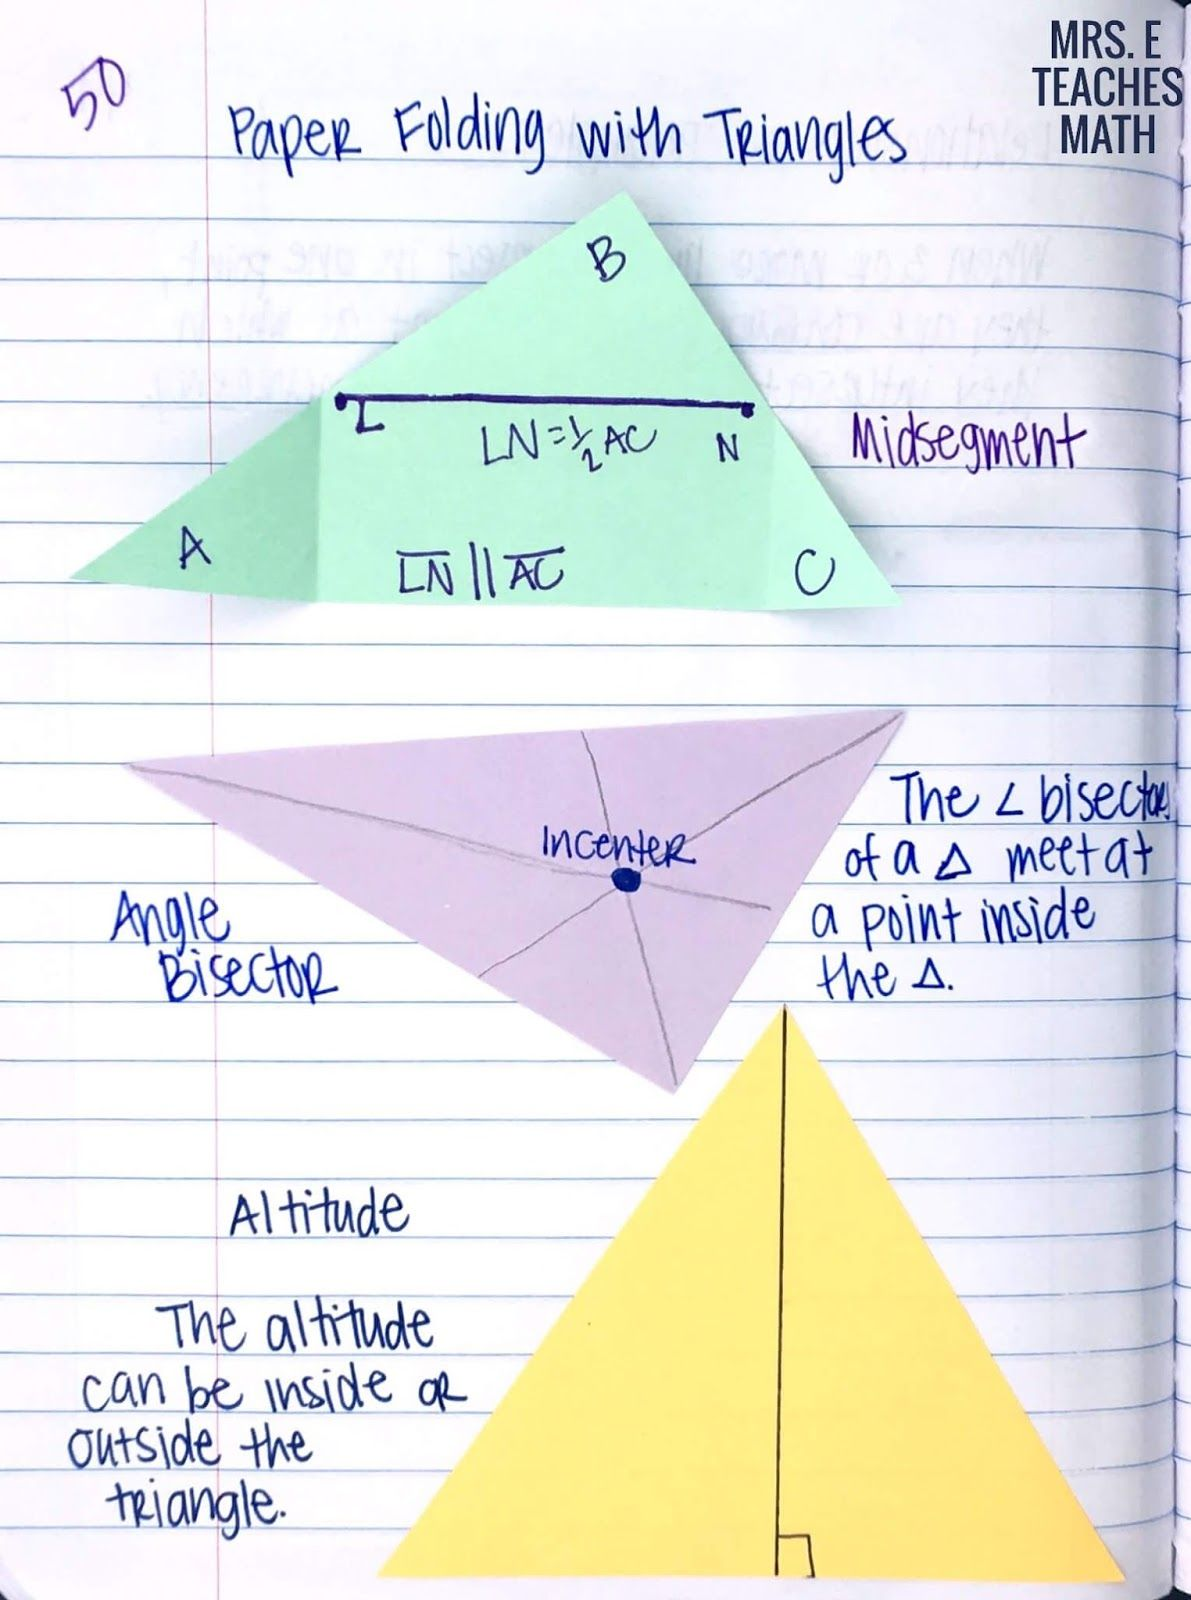 Relationships In Triangles Inb Pages